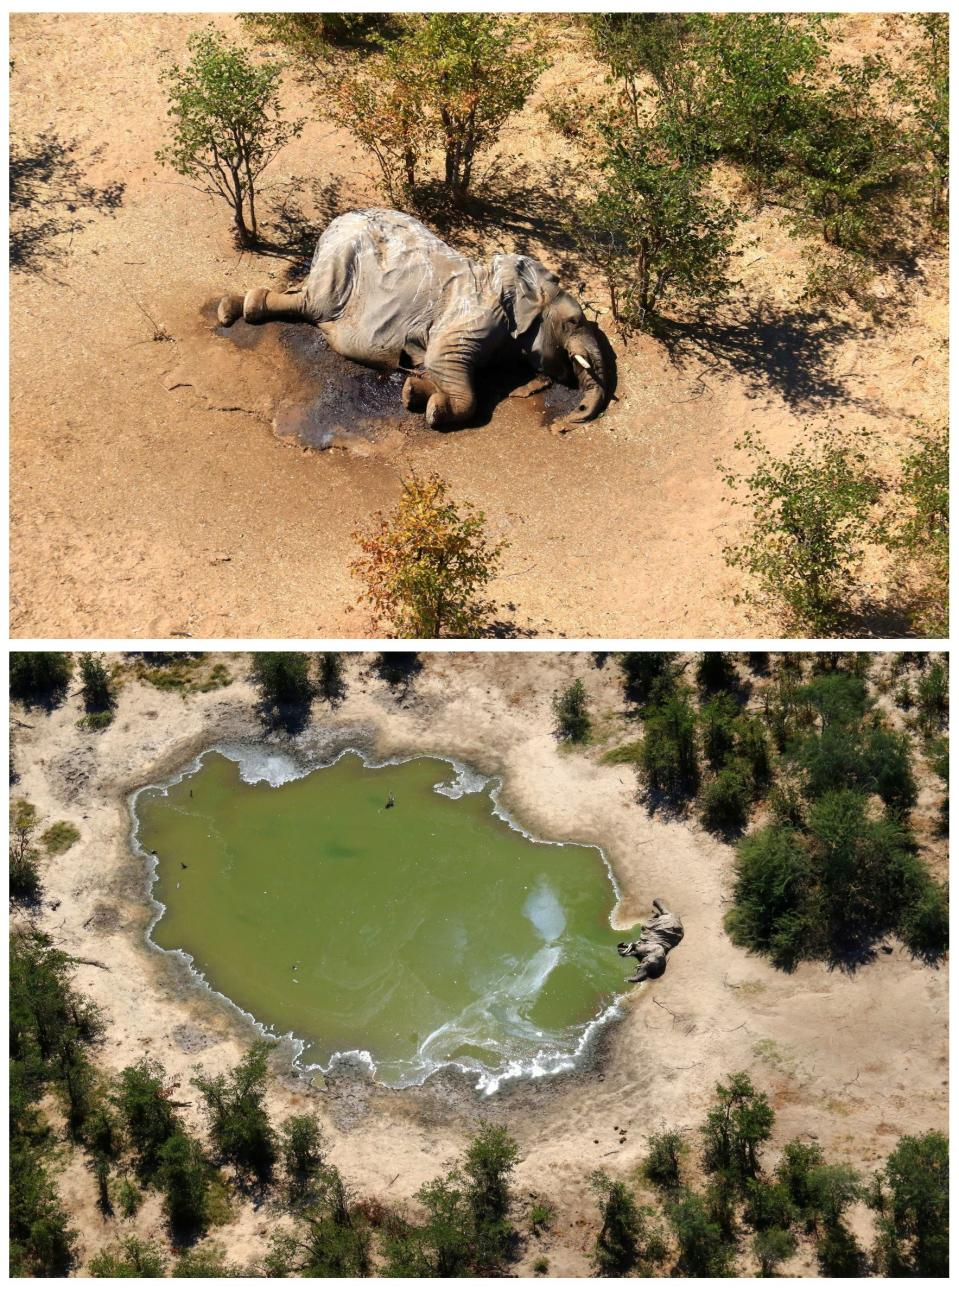 A combination photo shows dead elephants in Okavango Delta, Botswana May-June, 2020. PHOTOGRAPHS OBTAINED BY REUTERS/Handout via REUTERS ATTENTION EDITORS - THIS IMAGE HAS BEEN SUPPLIED BY A THIRD PARTY.